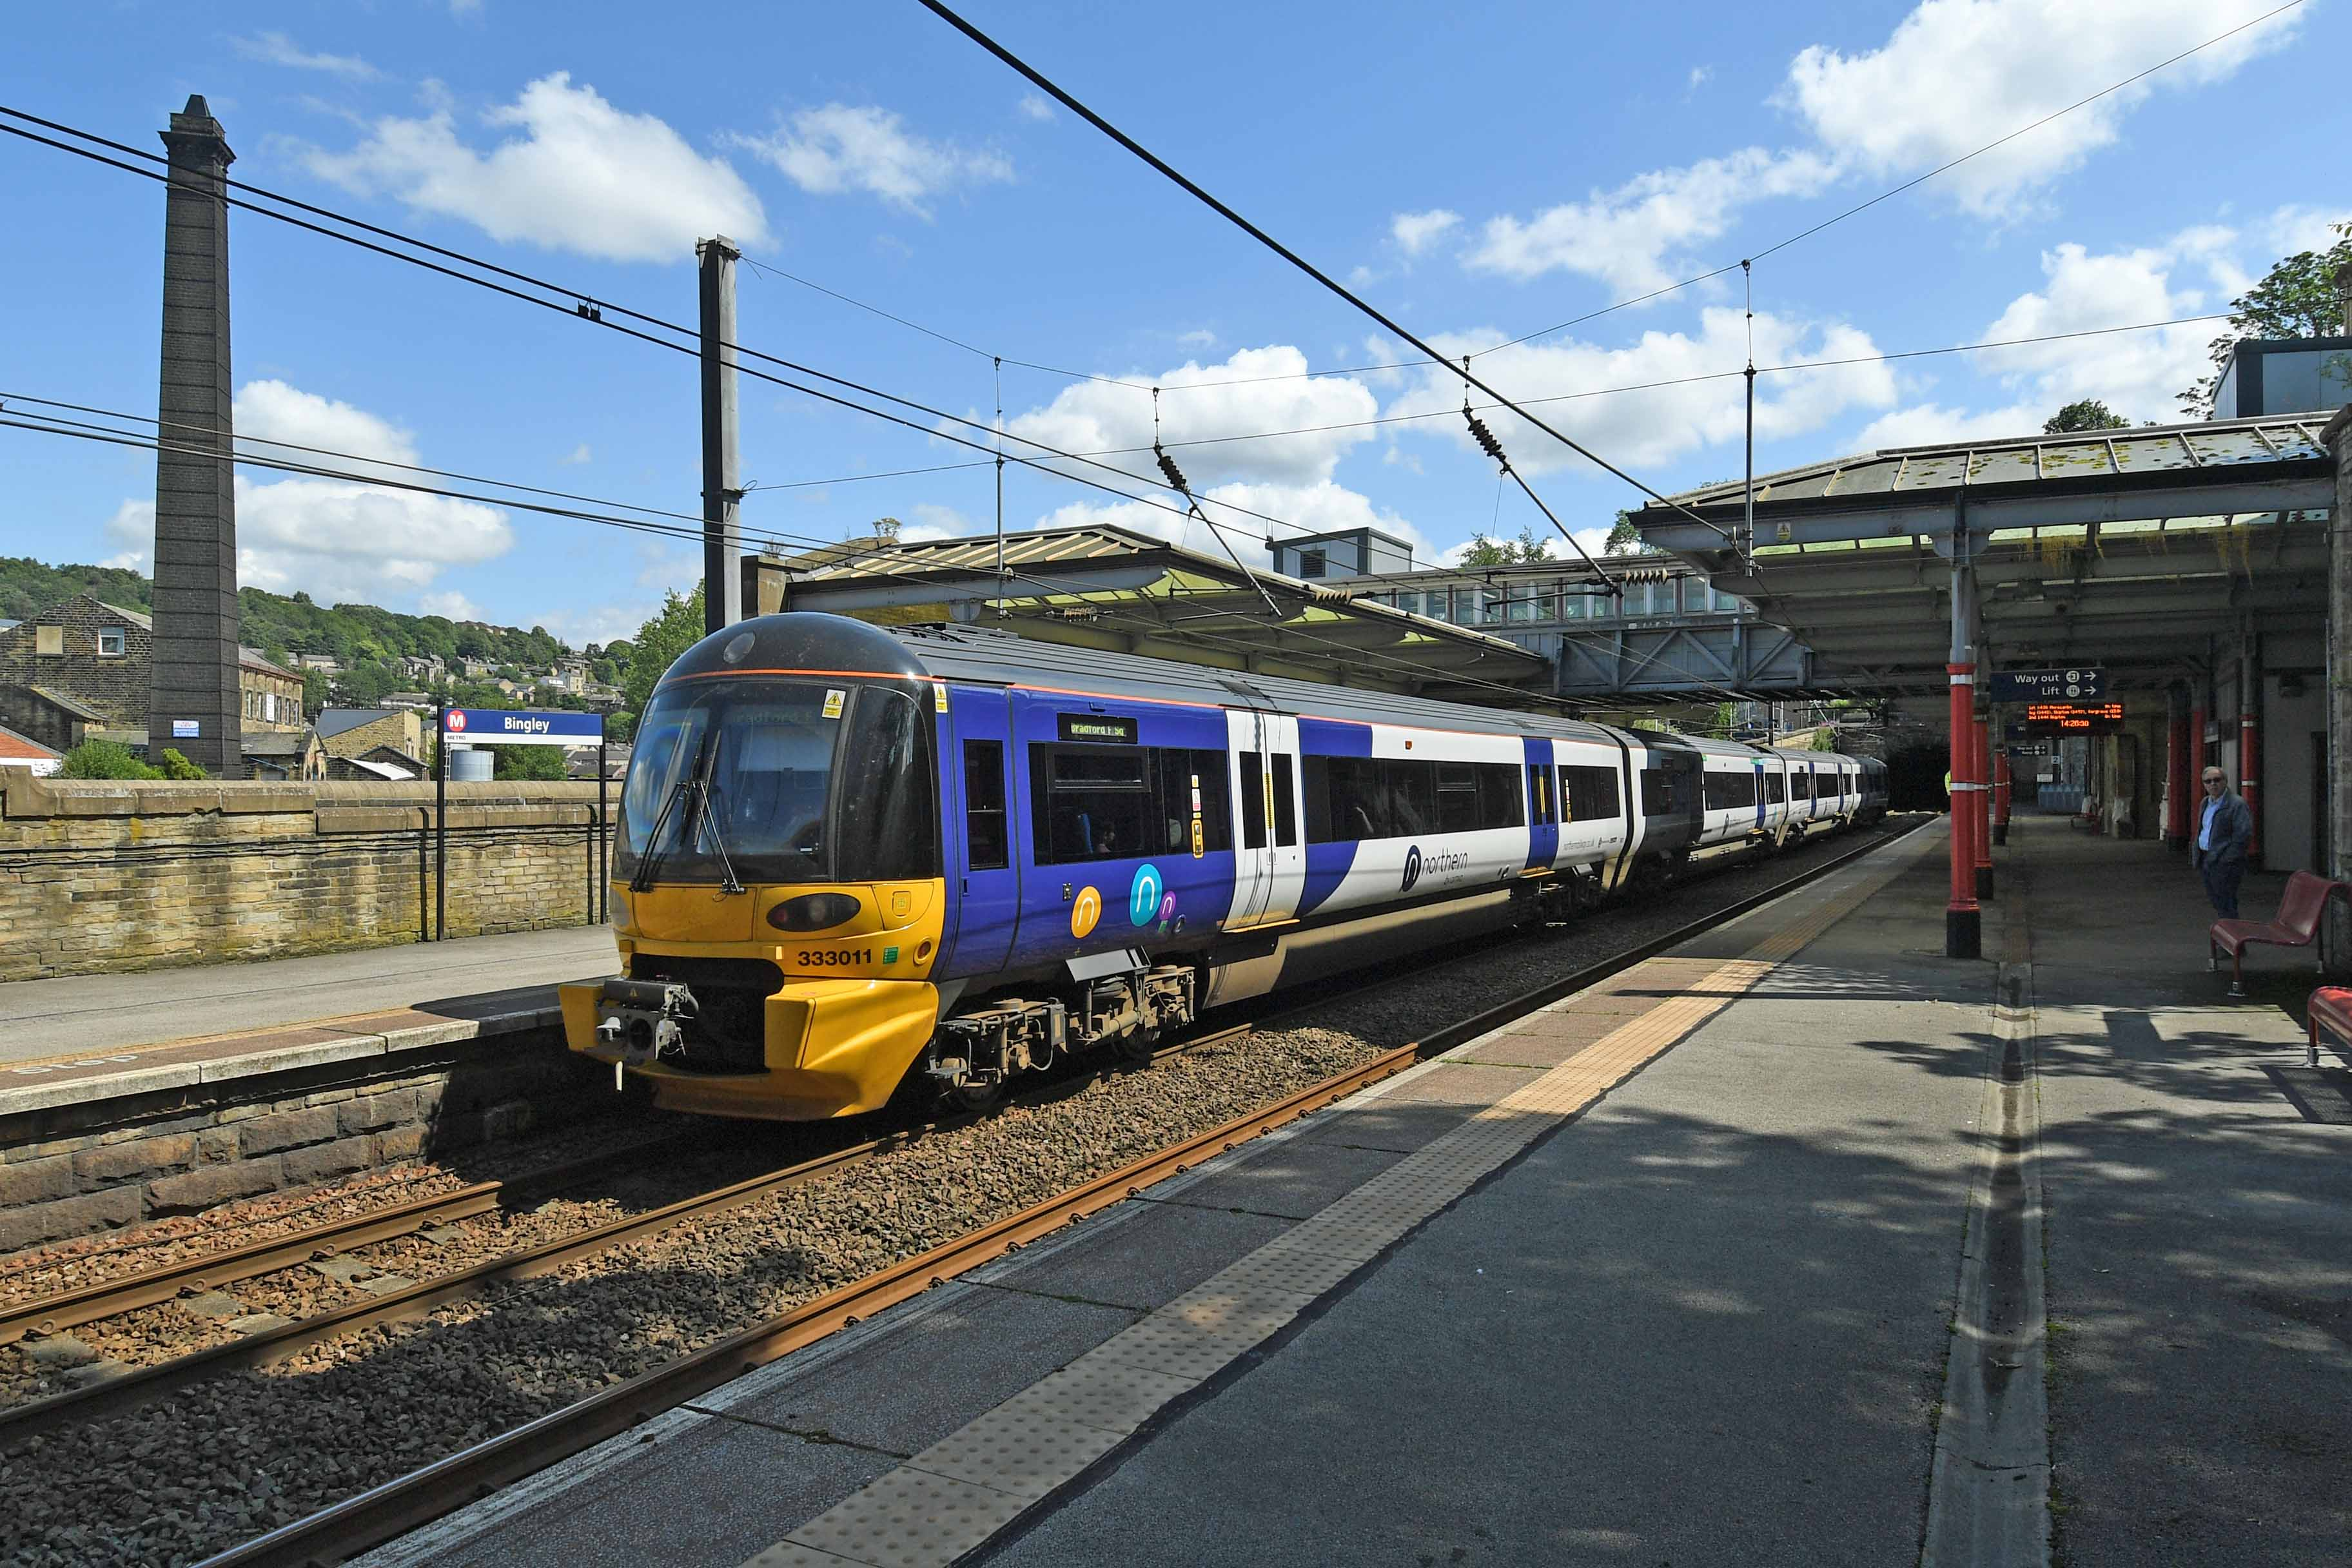 DG329693. 333011. Bingley. 29.7.19.crop